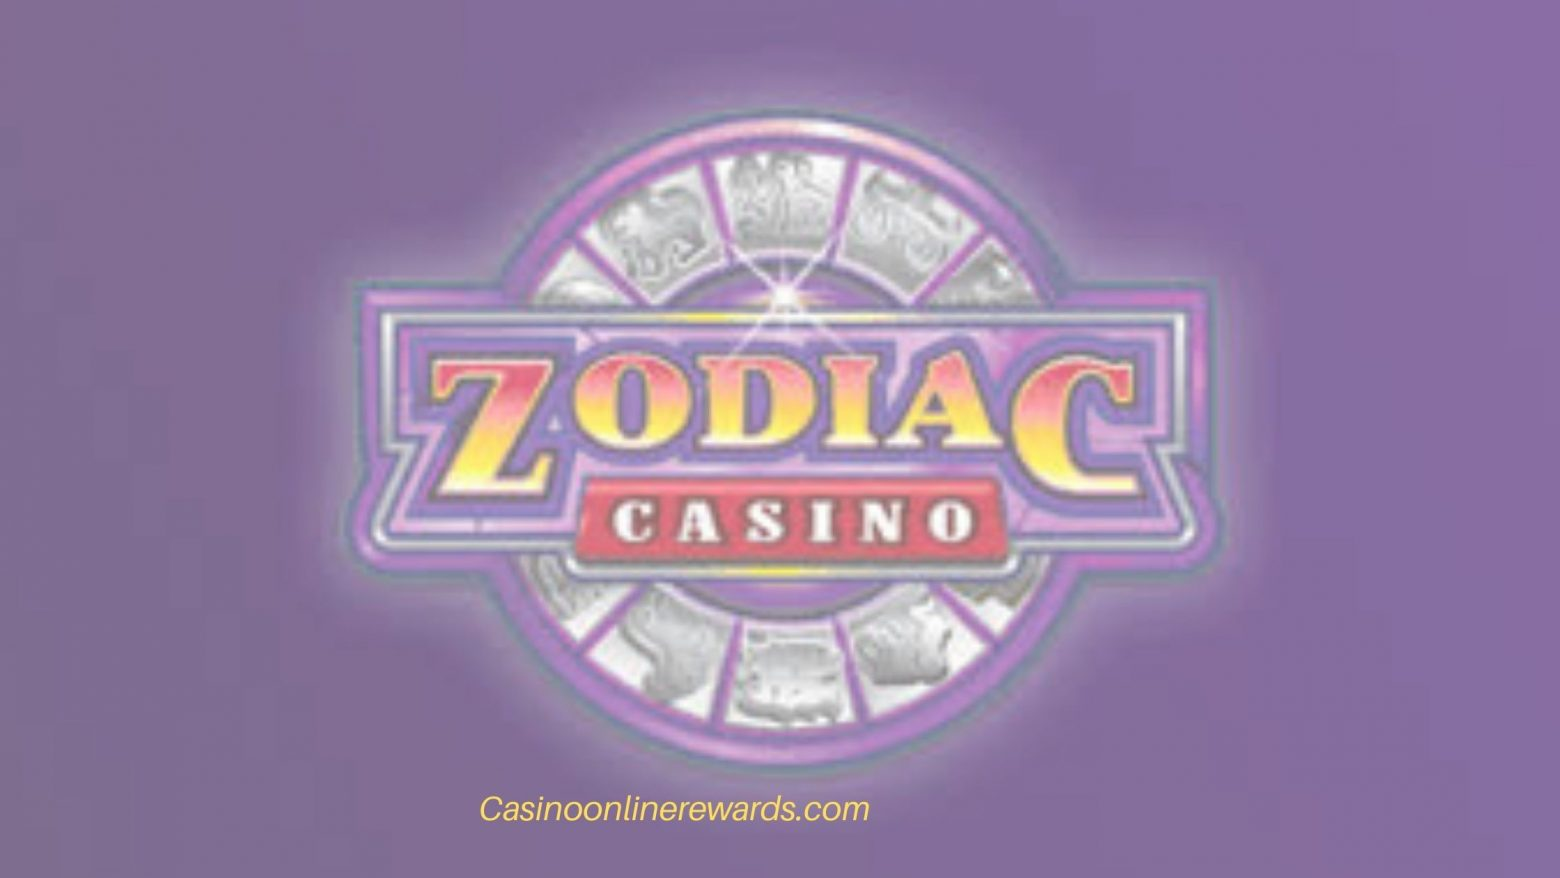 Zodiac casino logo update